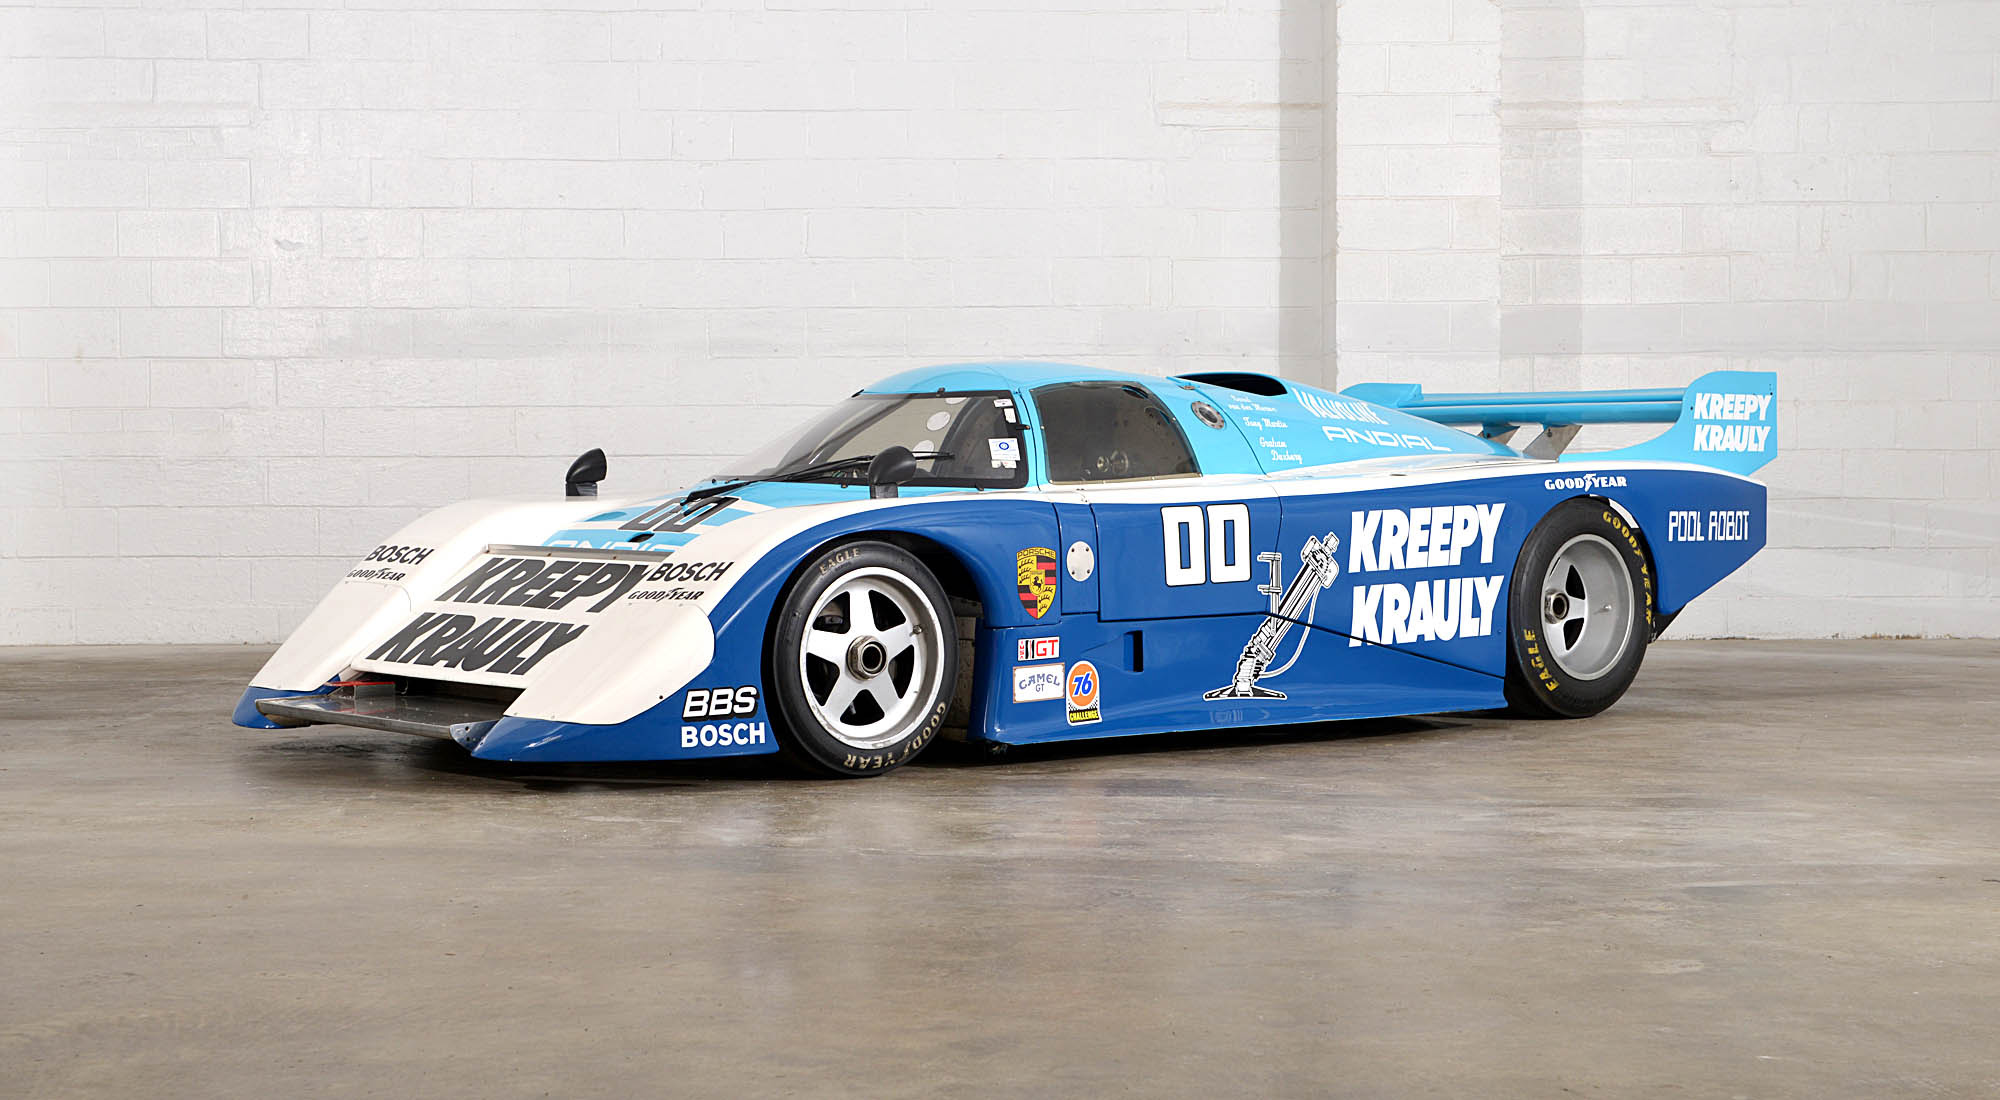 The 'Kreepy Krauly' March Porsche 83G-04 which won the 1984 24 Hours of Daytona and was the first design of Adrian Newey